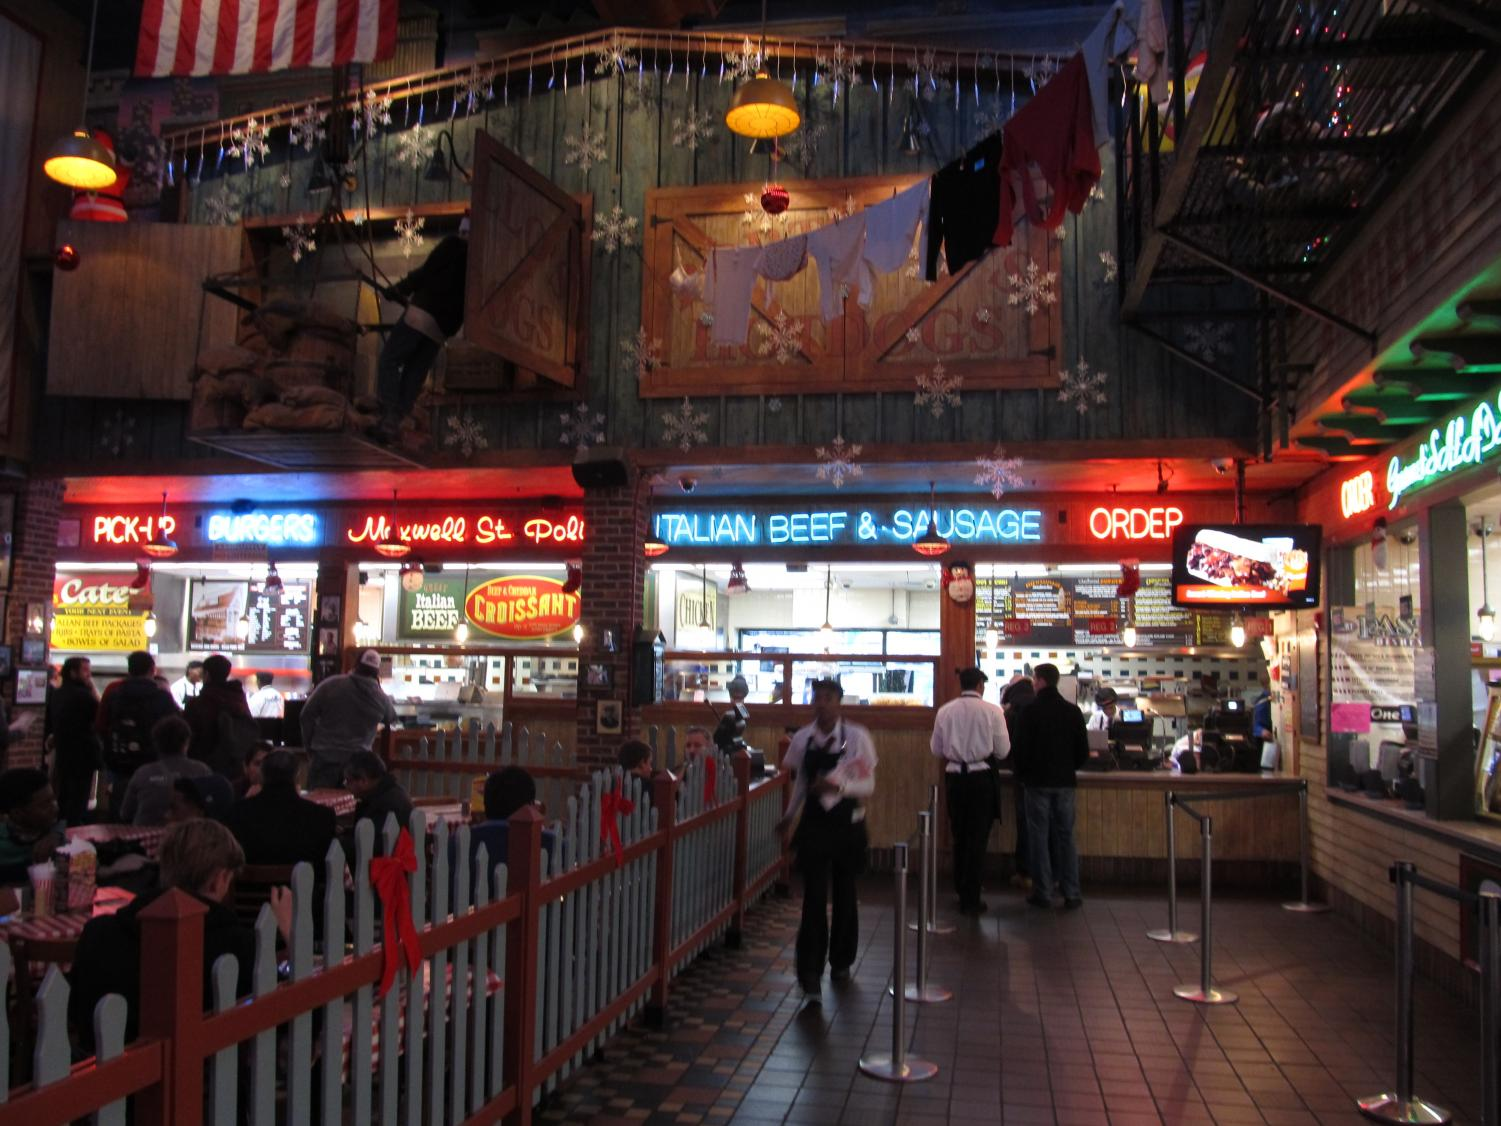 Portillo's restaurant offers a variety of great menu options, and a relaxed dining atmosphere.